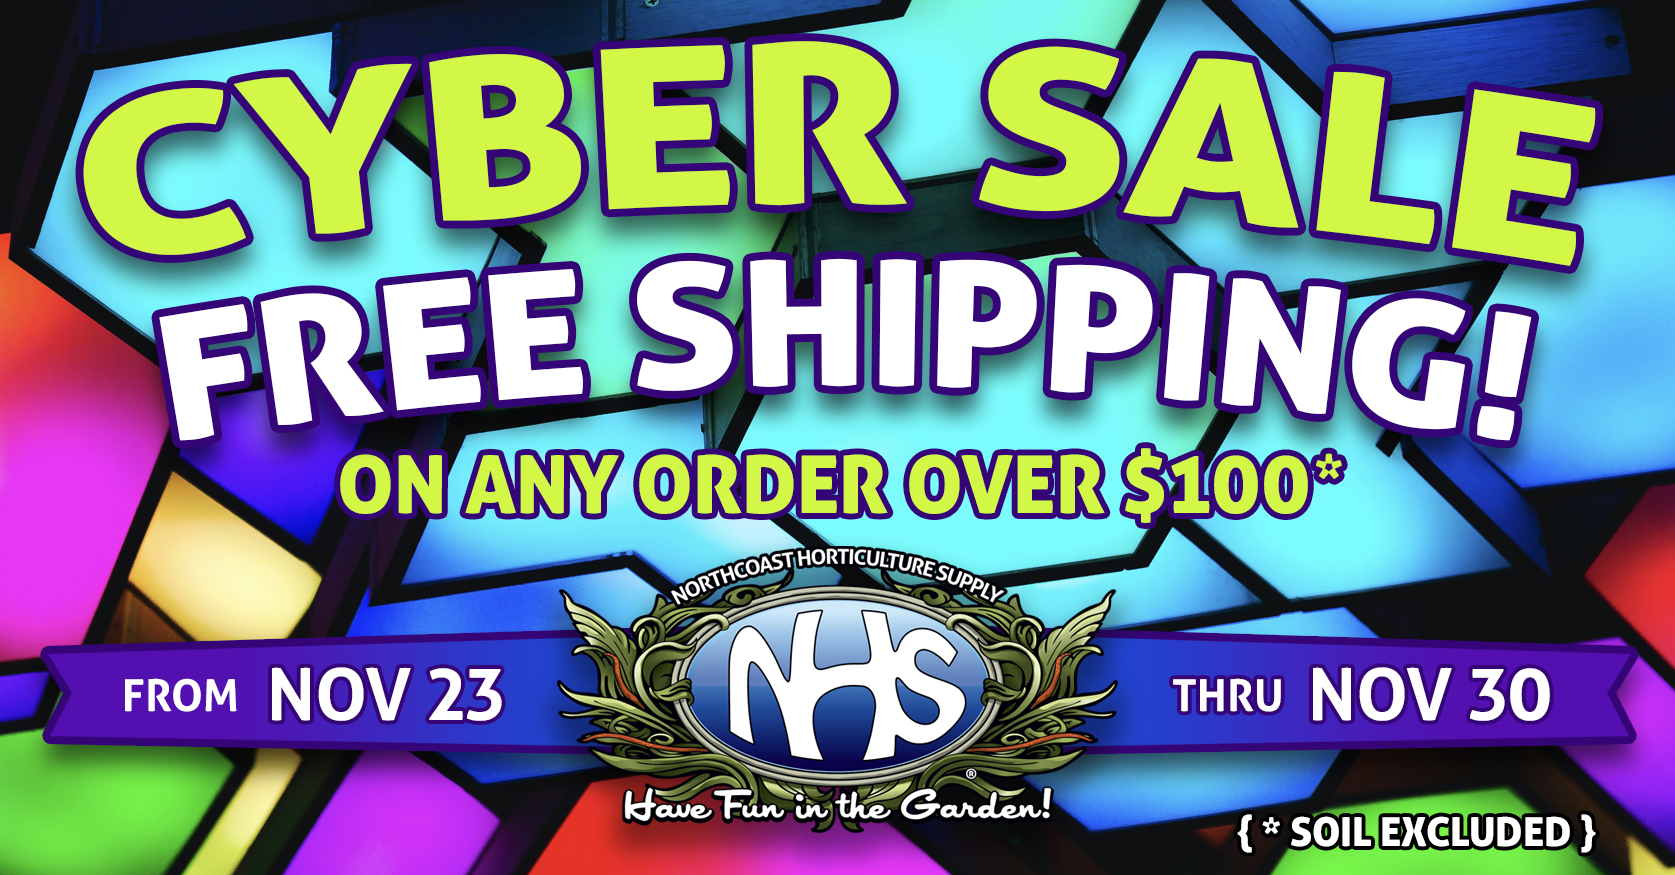 Cyber Sale - Free Shipping November 23-30th